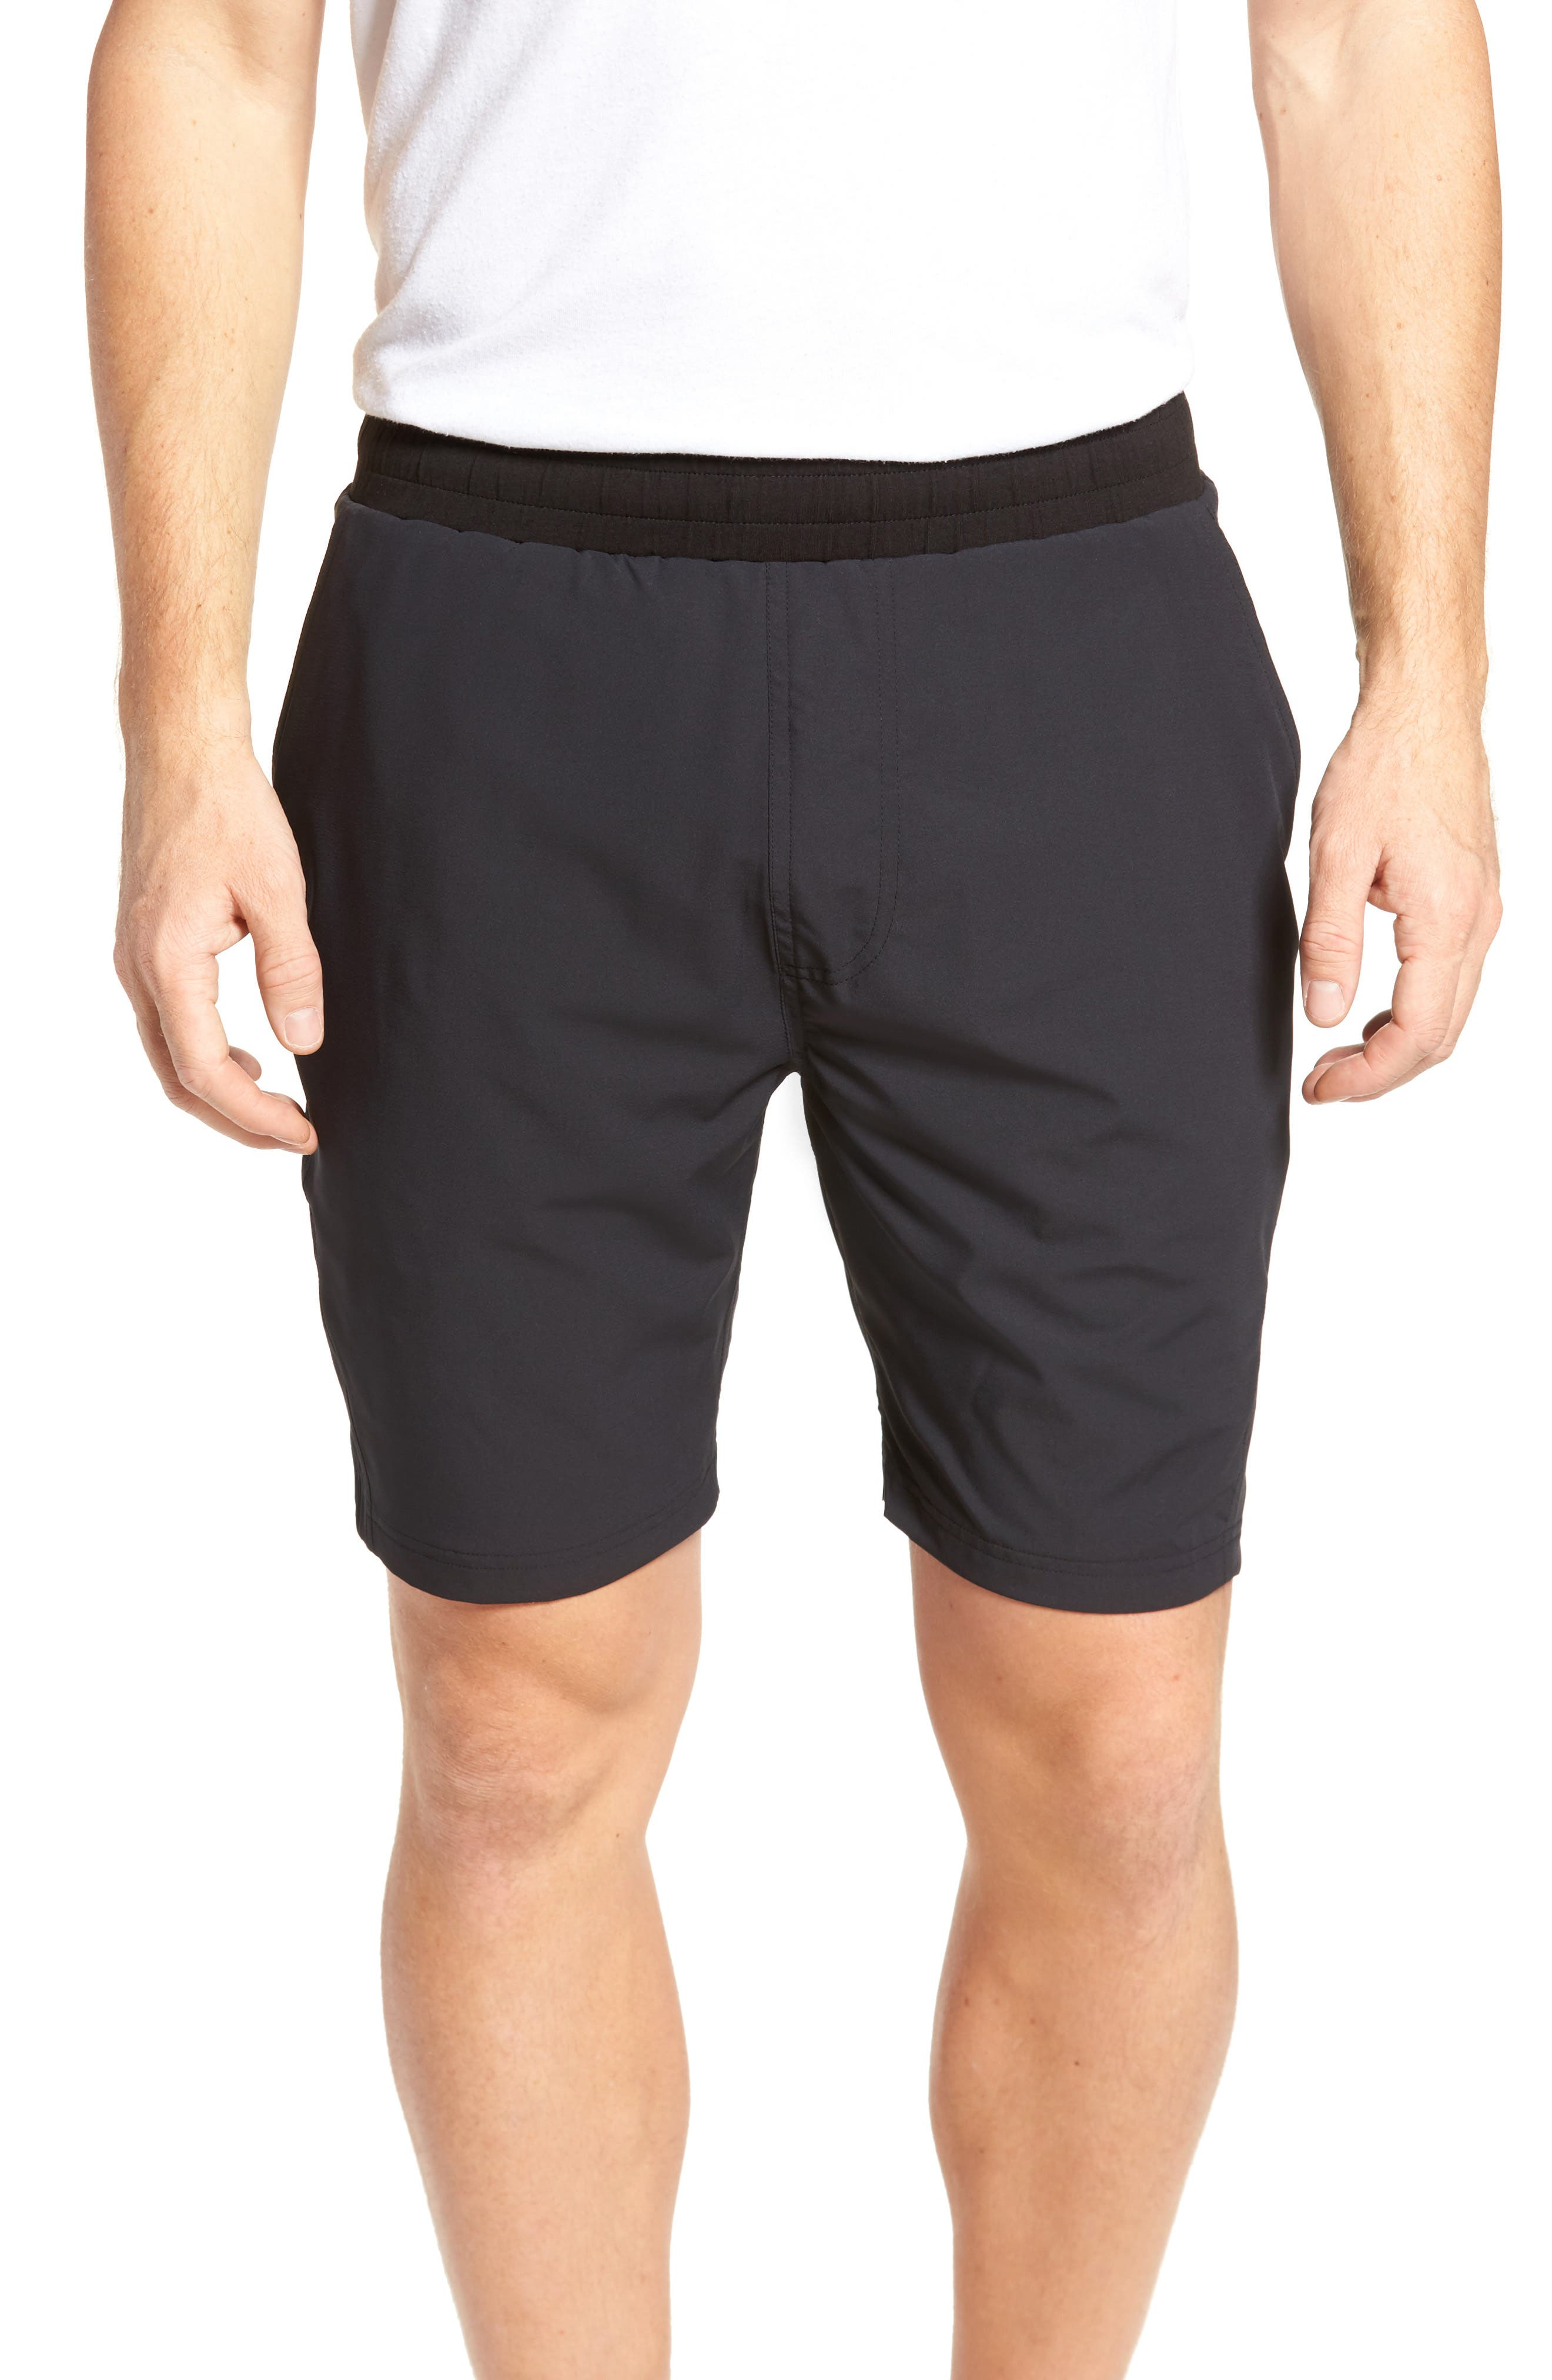 Alternate Image 1 Selected - tasc Performance Charge Water Resistant Athletic Shorts